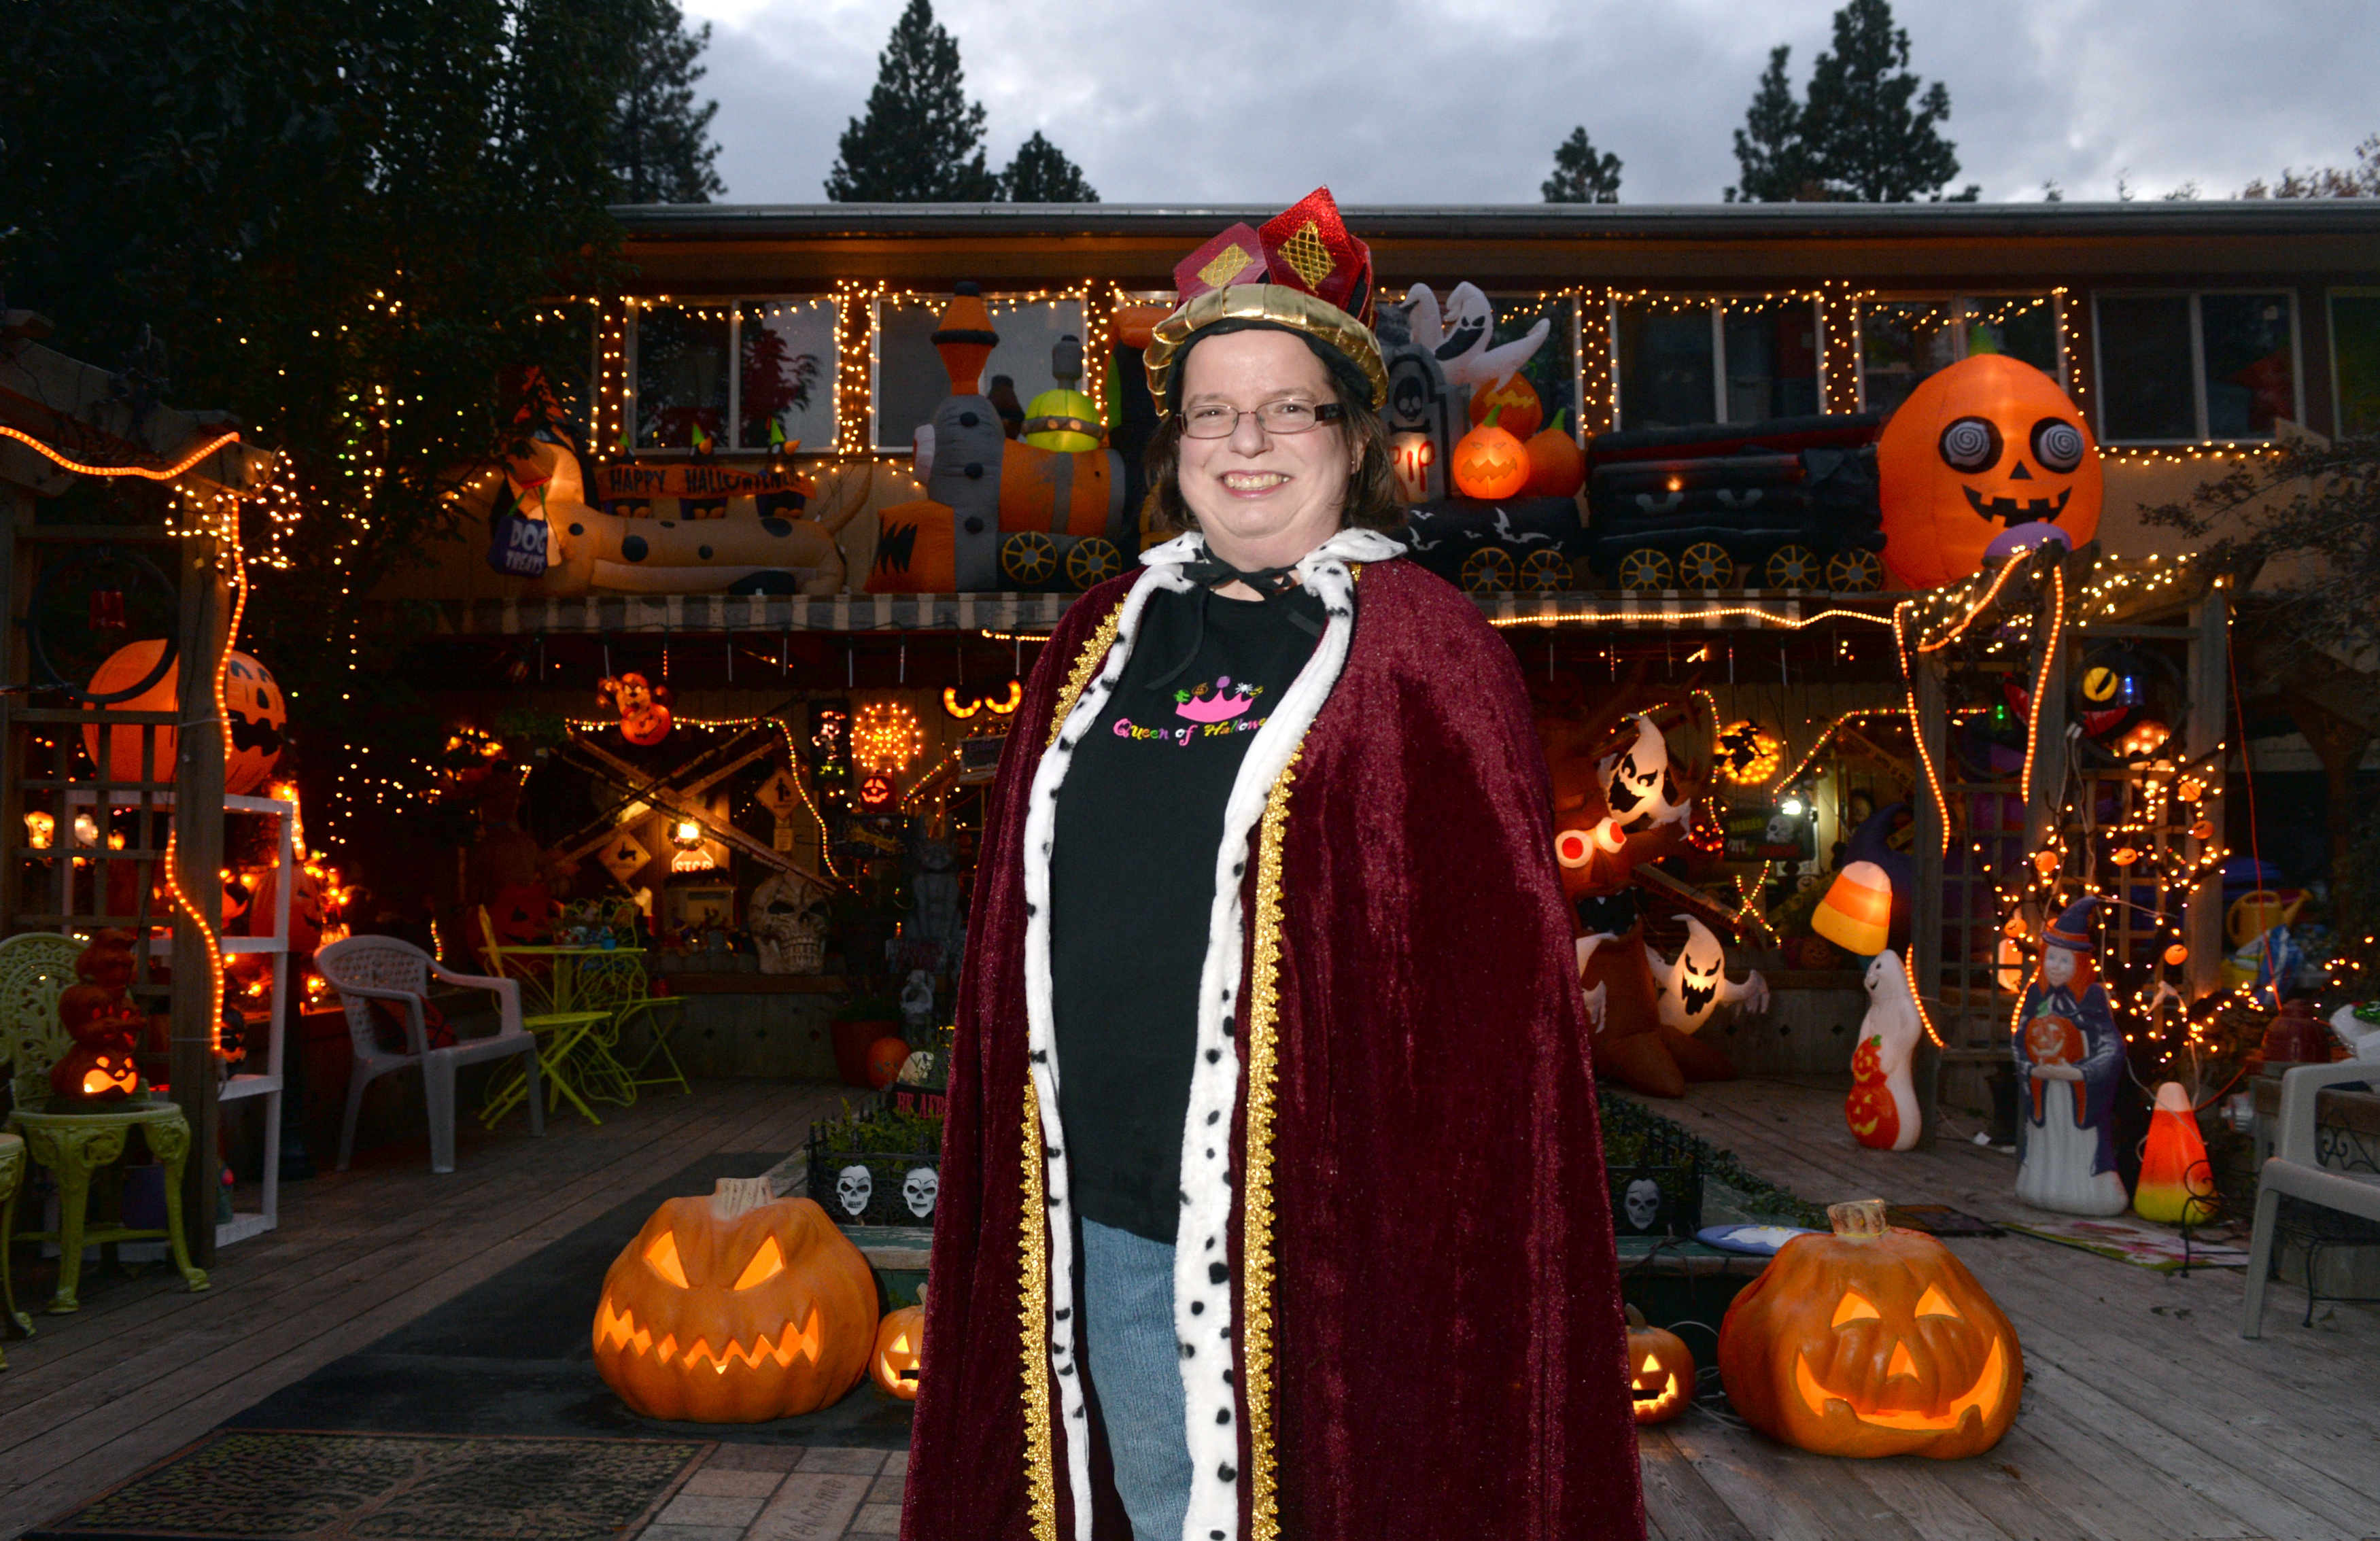 Queen of Halloween' puts on another spook-tacular display | The ...